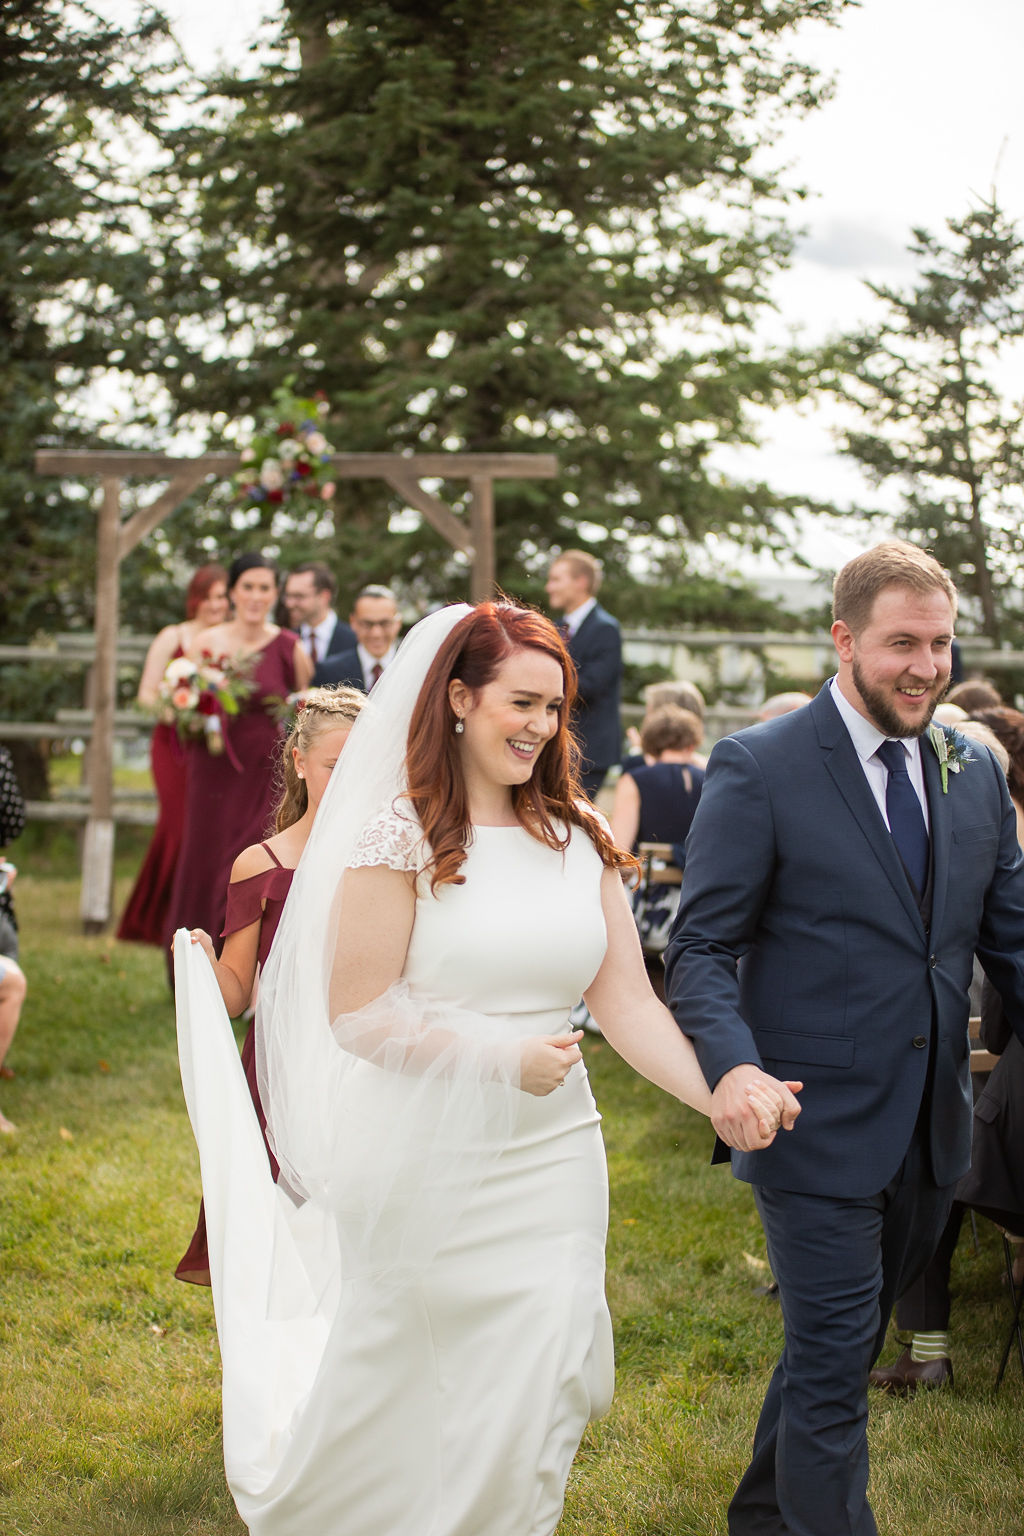 walking down the aisle just married surrounded by friends and family at their outdoor wedding ceremony at the Gathered. www.thegathered.ca